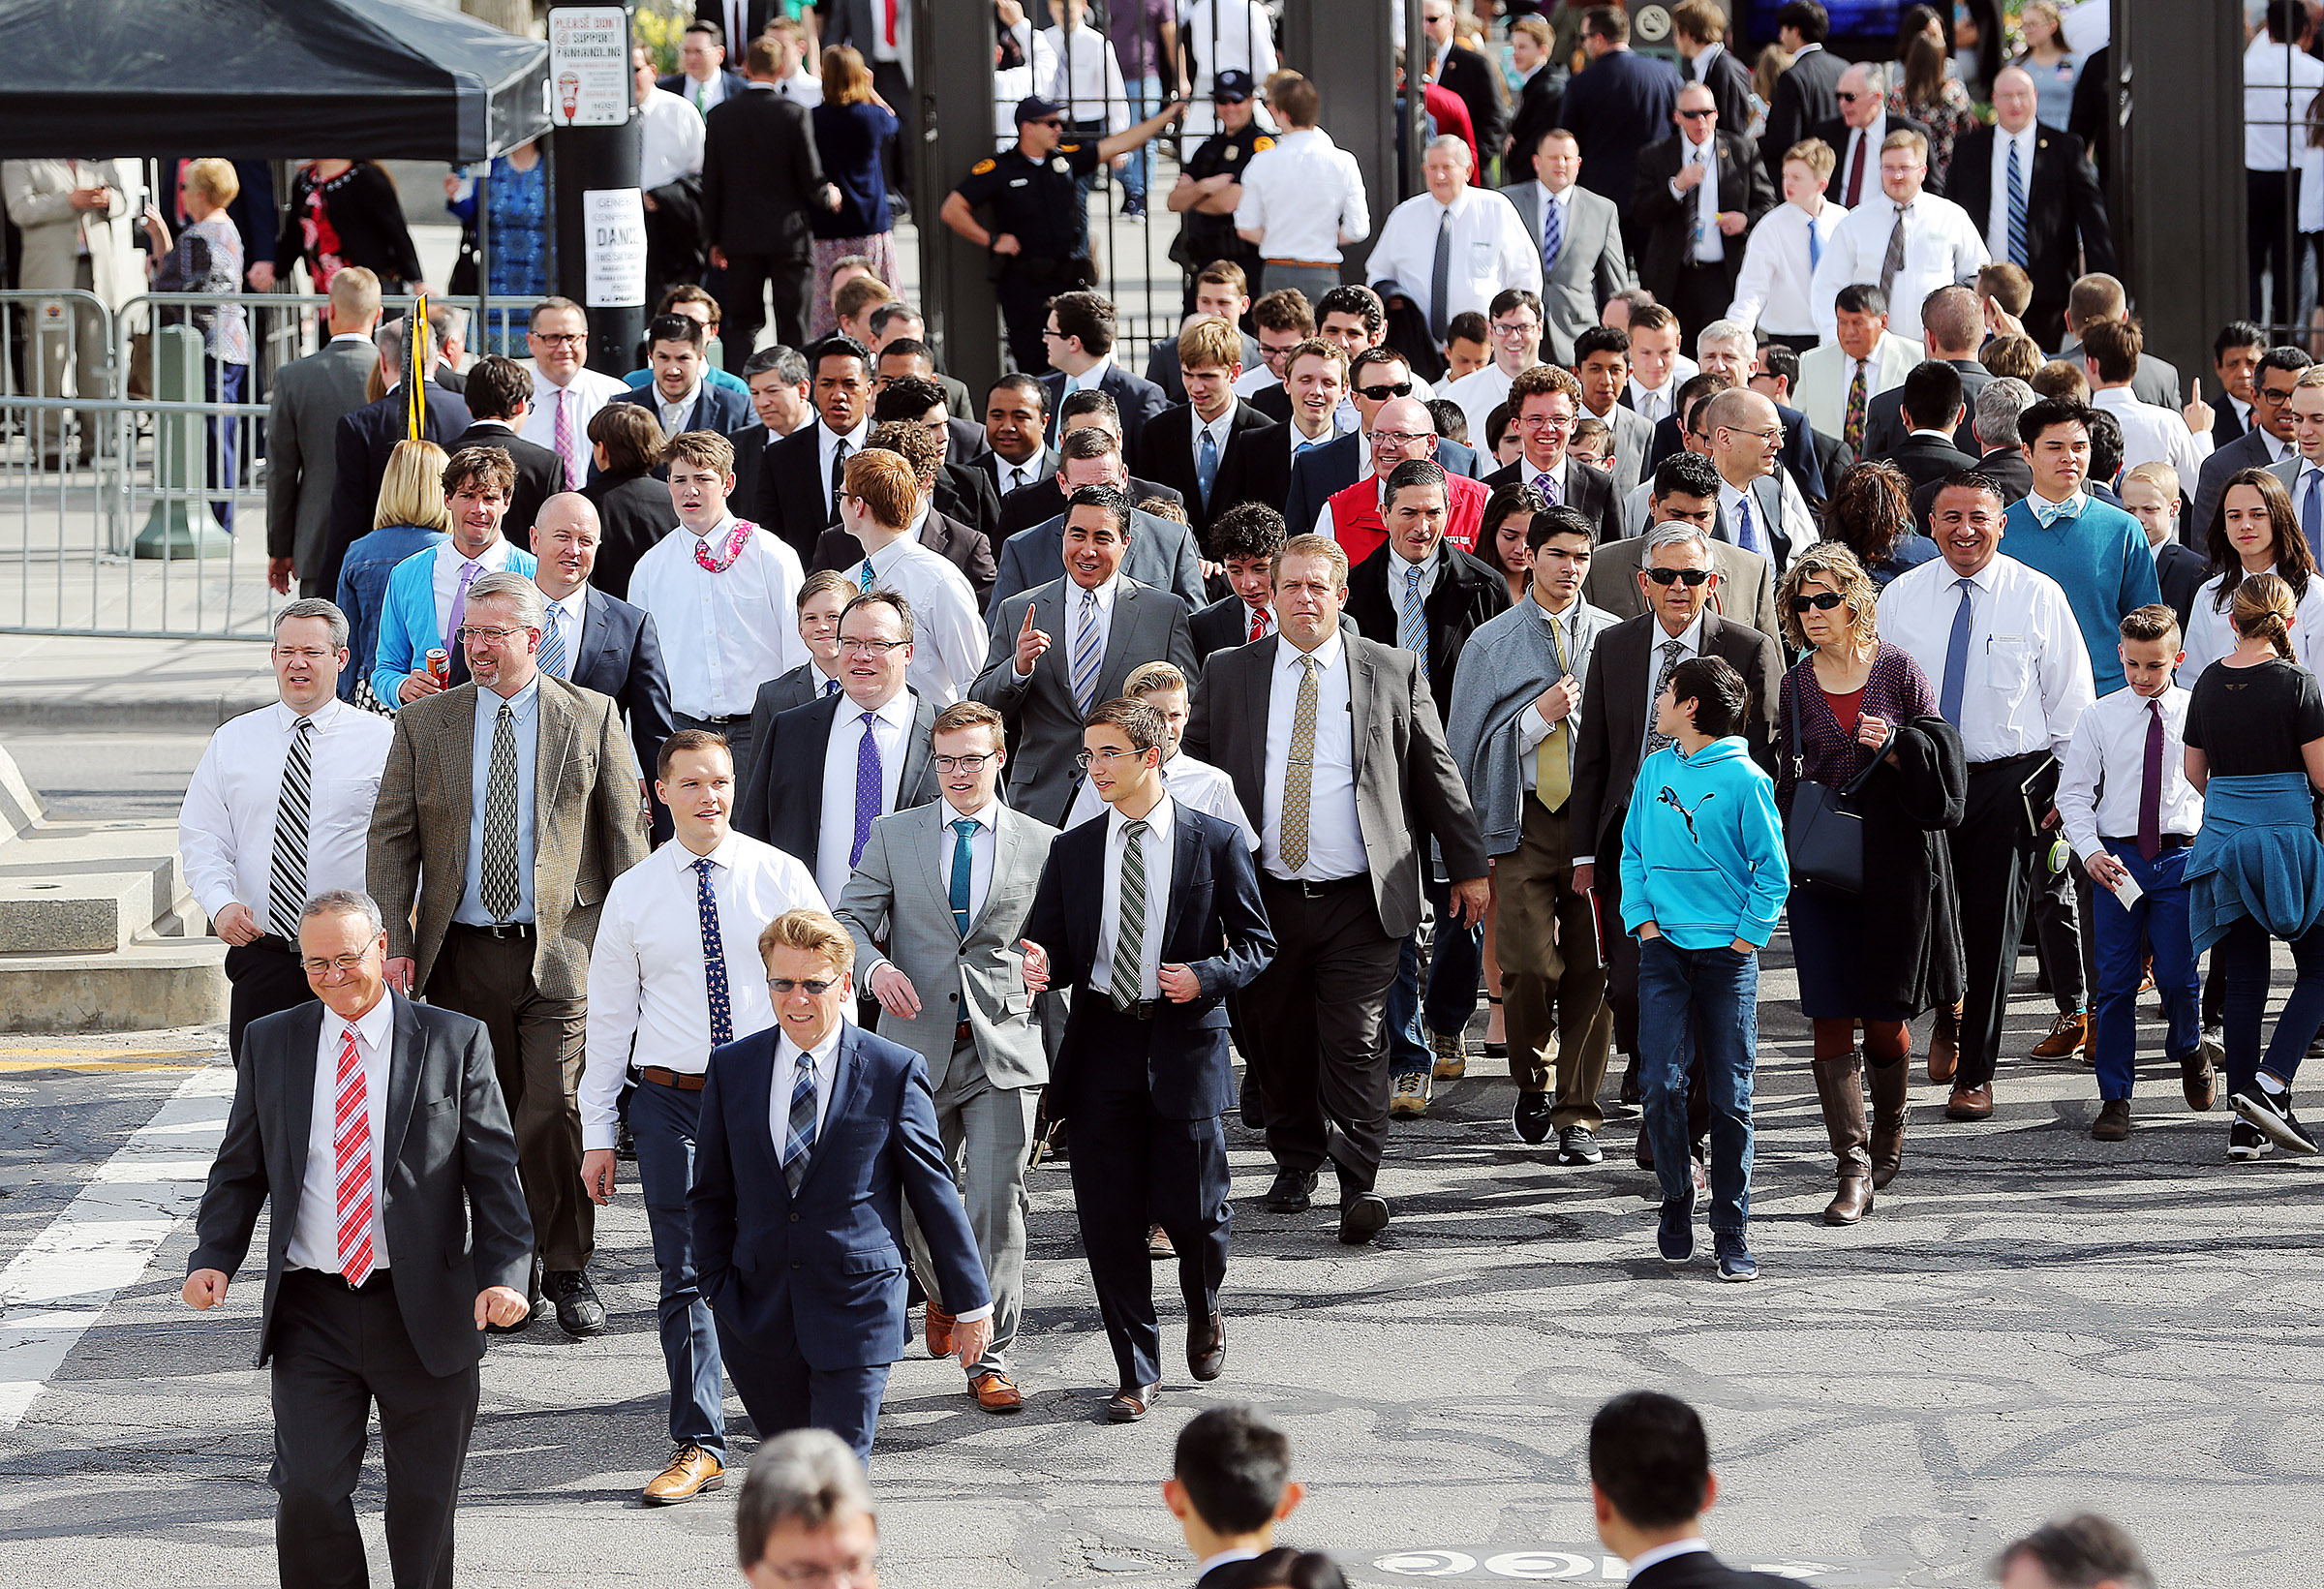 Priesthood goers begin making their way into the Conference Center for the general priesthood session of the 188th Annual General Conference of The Church of Jesus Christ of Latter-day Saints, in Salt Lake City on Saturday, March 31, 2018.